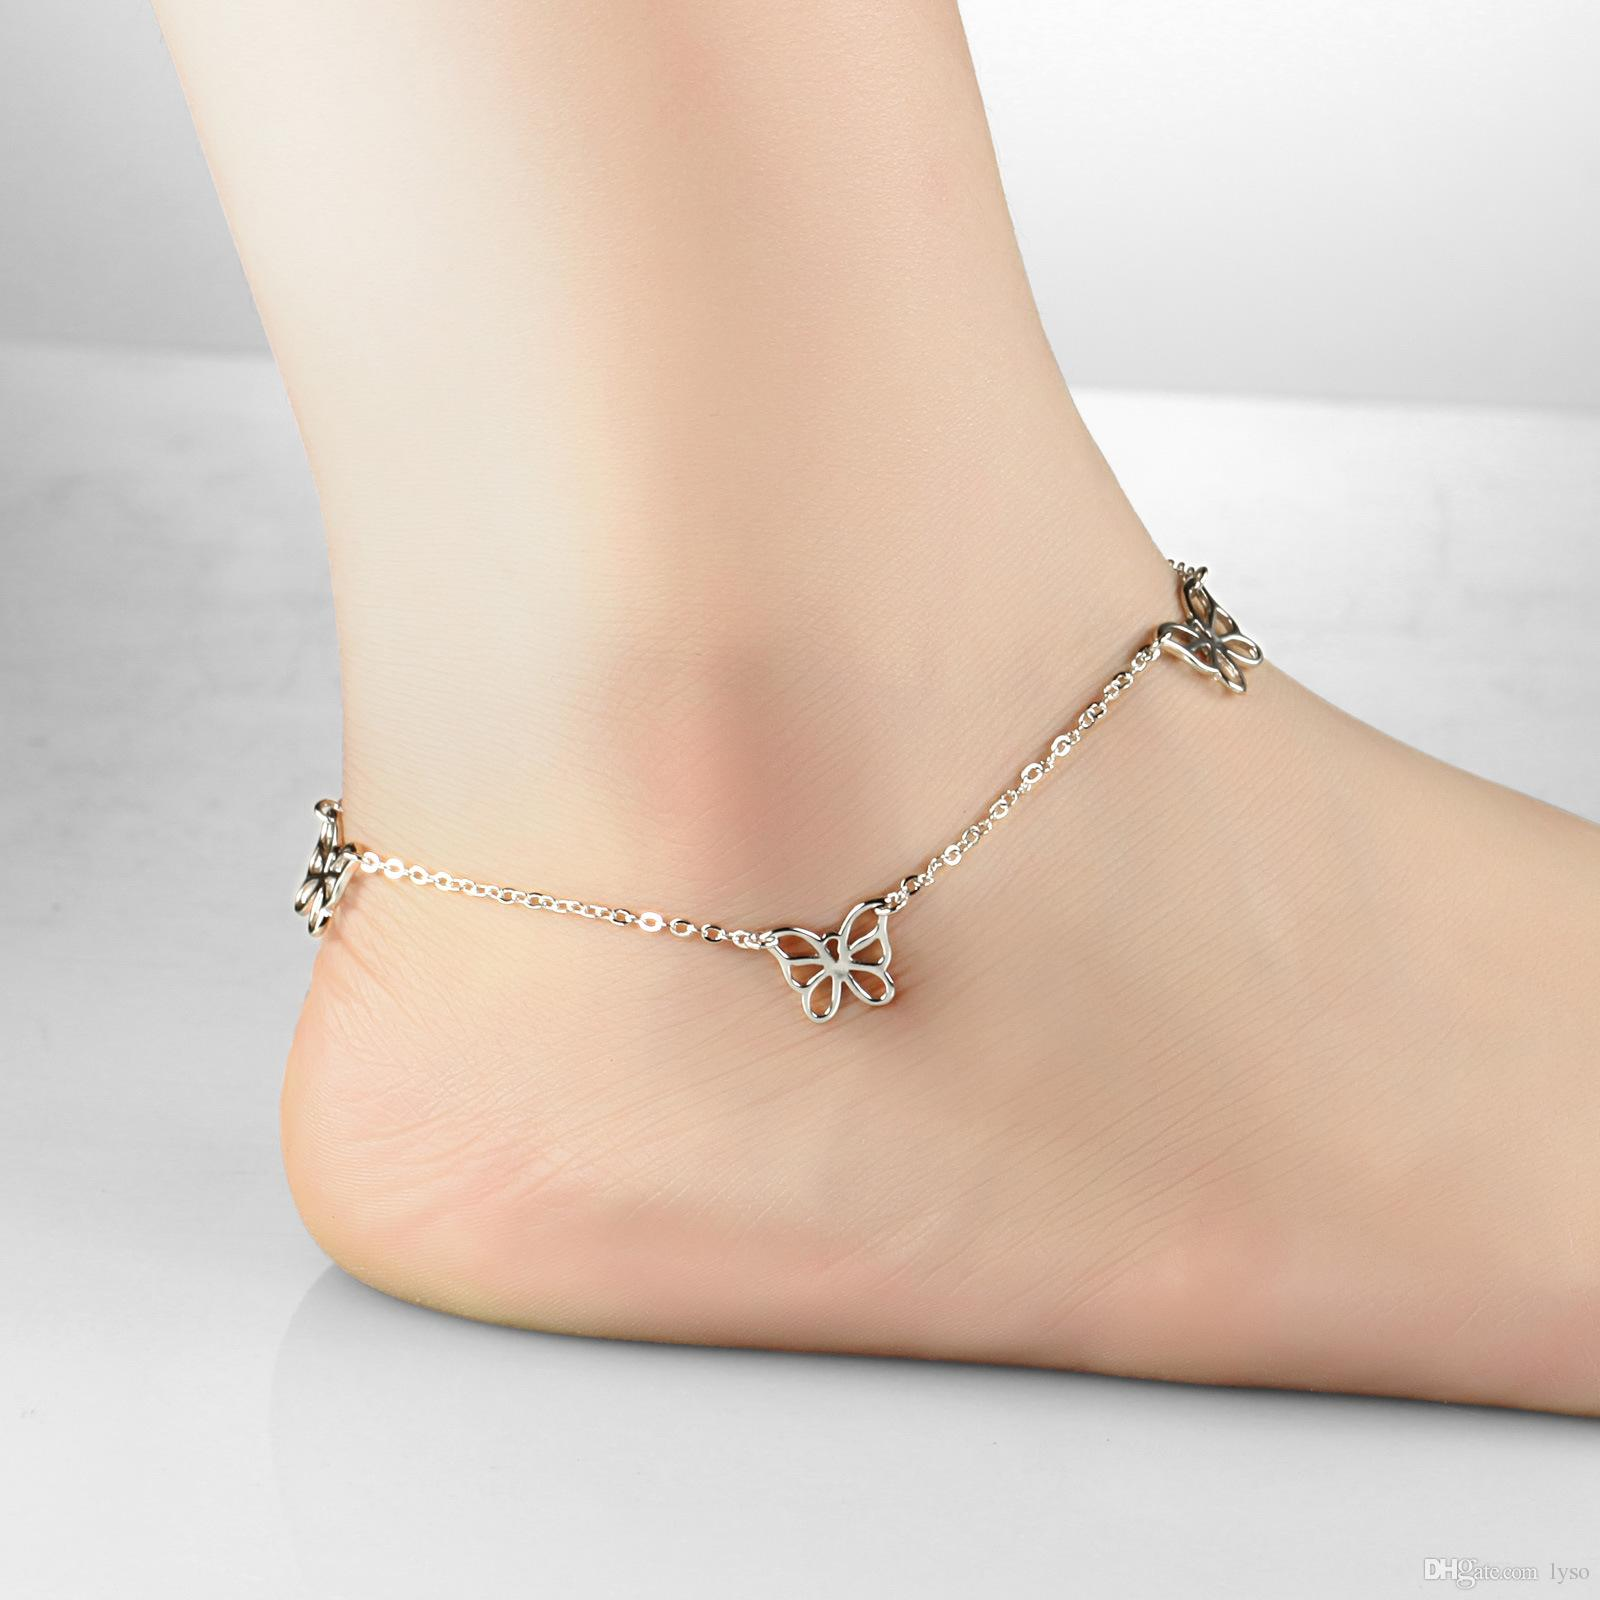 vermeil bracelet pendant silver chai sterling necklace gold rolo rose for chain plated anklet sizes all